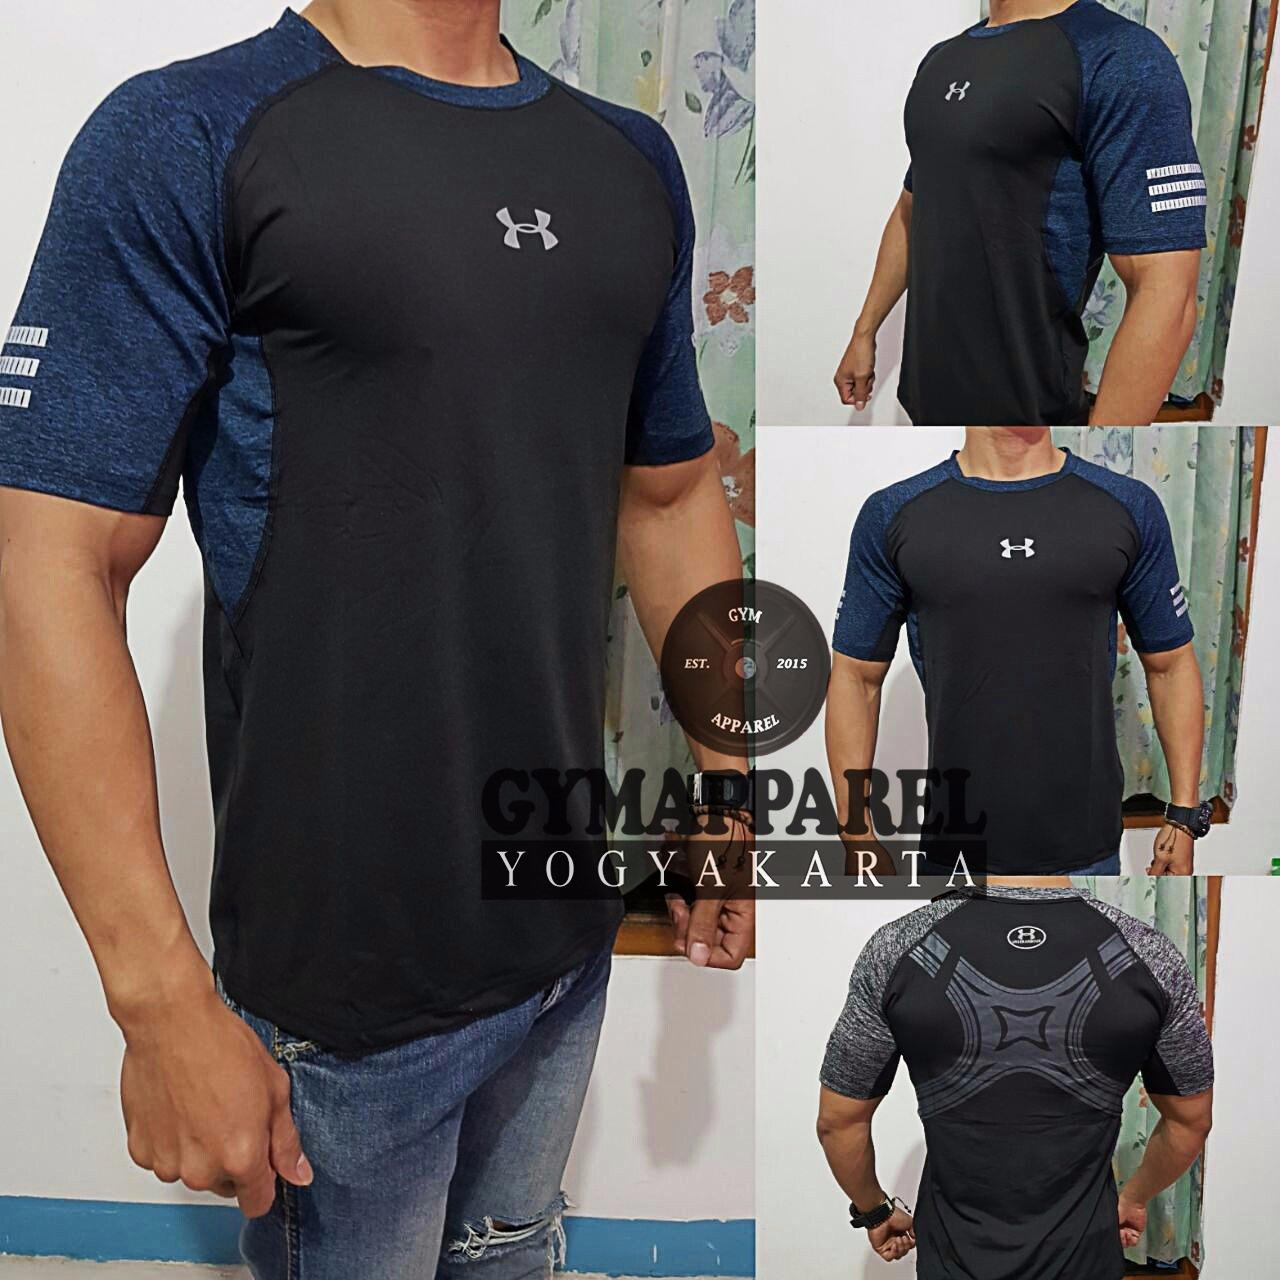 Produk Under Armour Terbaik Charged Cotton Tshirt Kaos Size S Olahraga Fitness Graphic Commbine Misty Gym Run Sepeda Training Golf Tennis Dri Fit